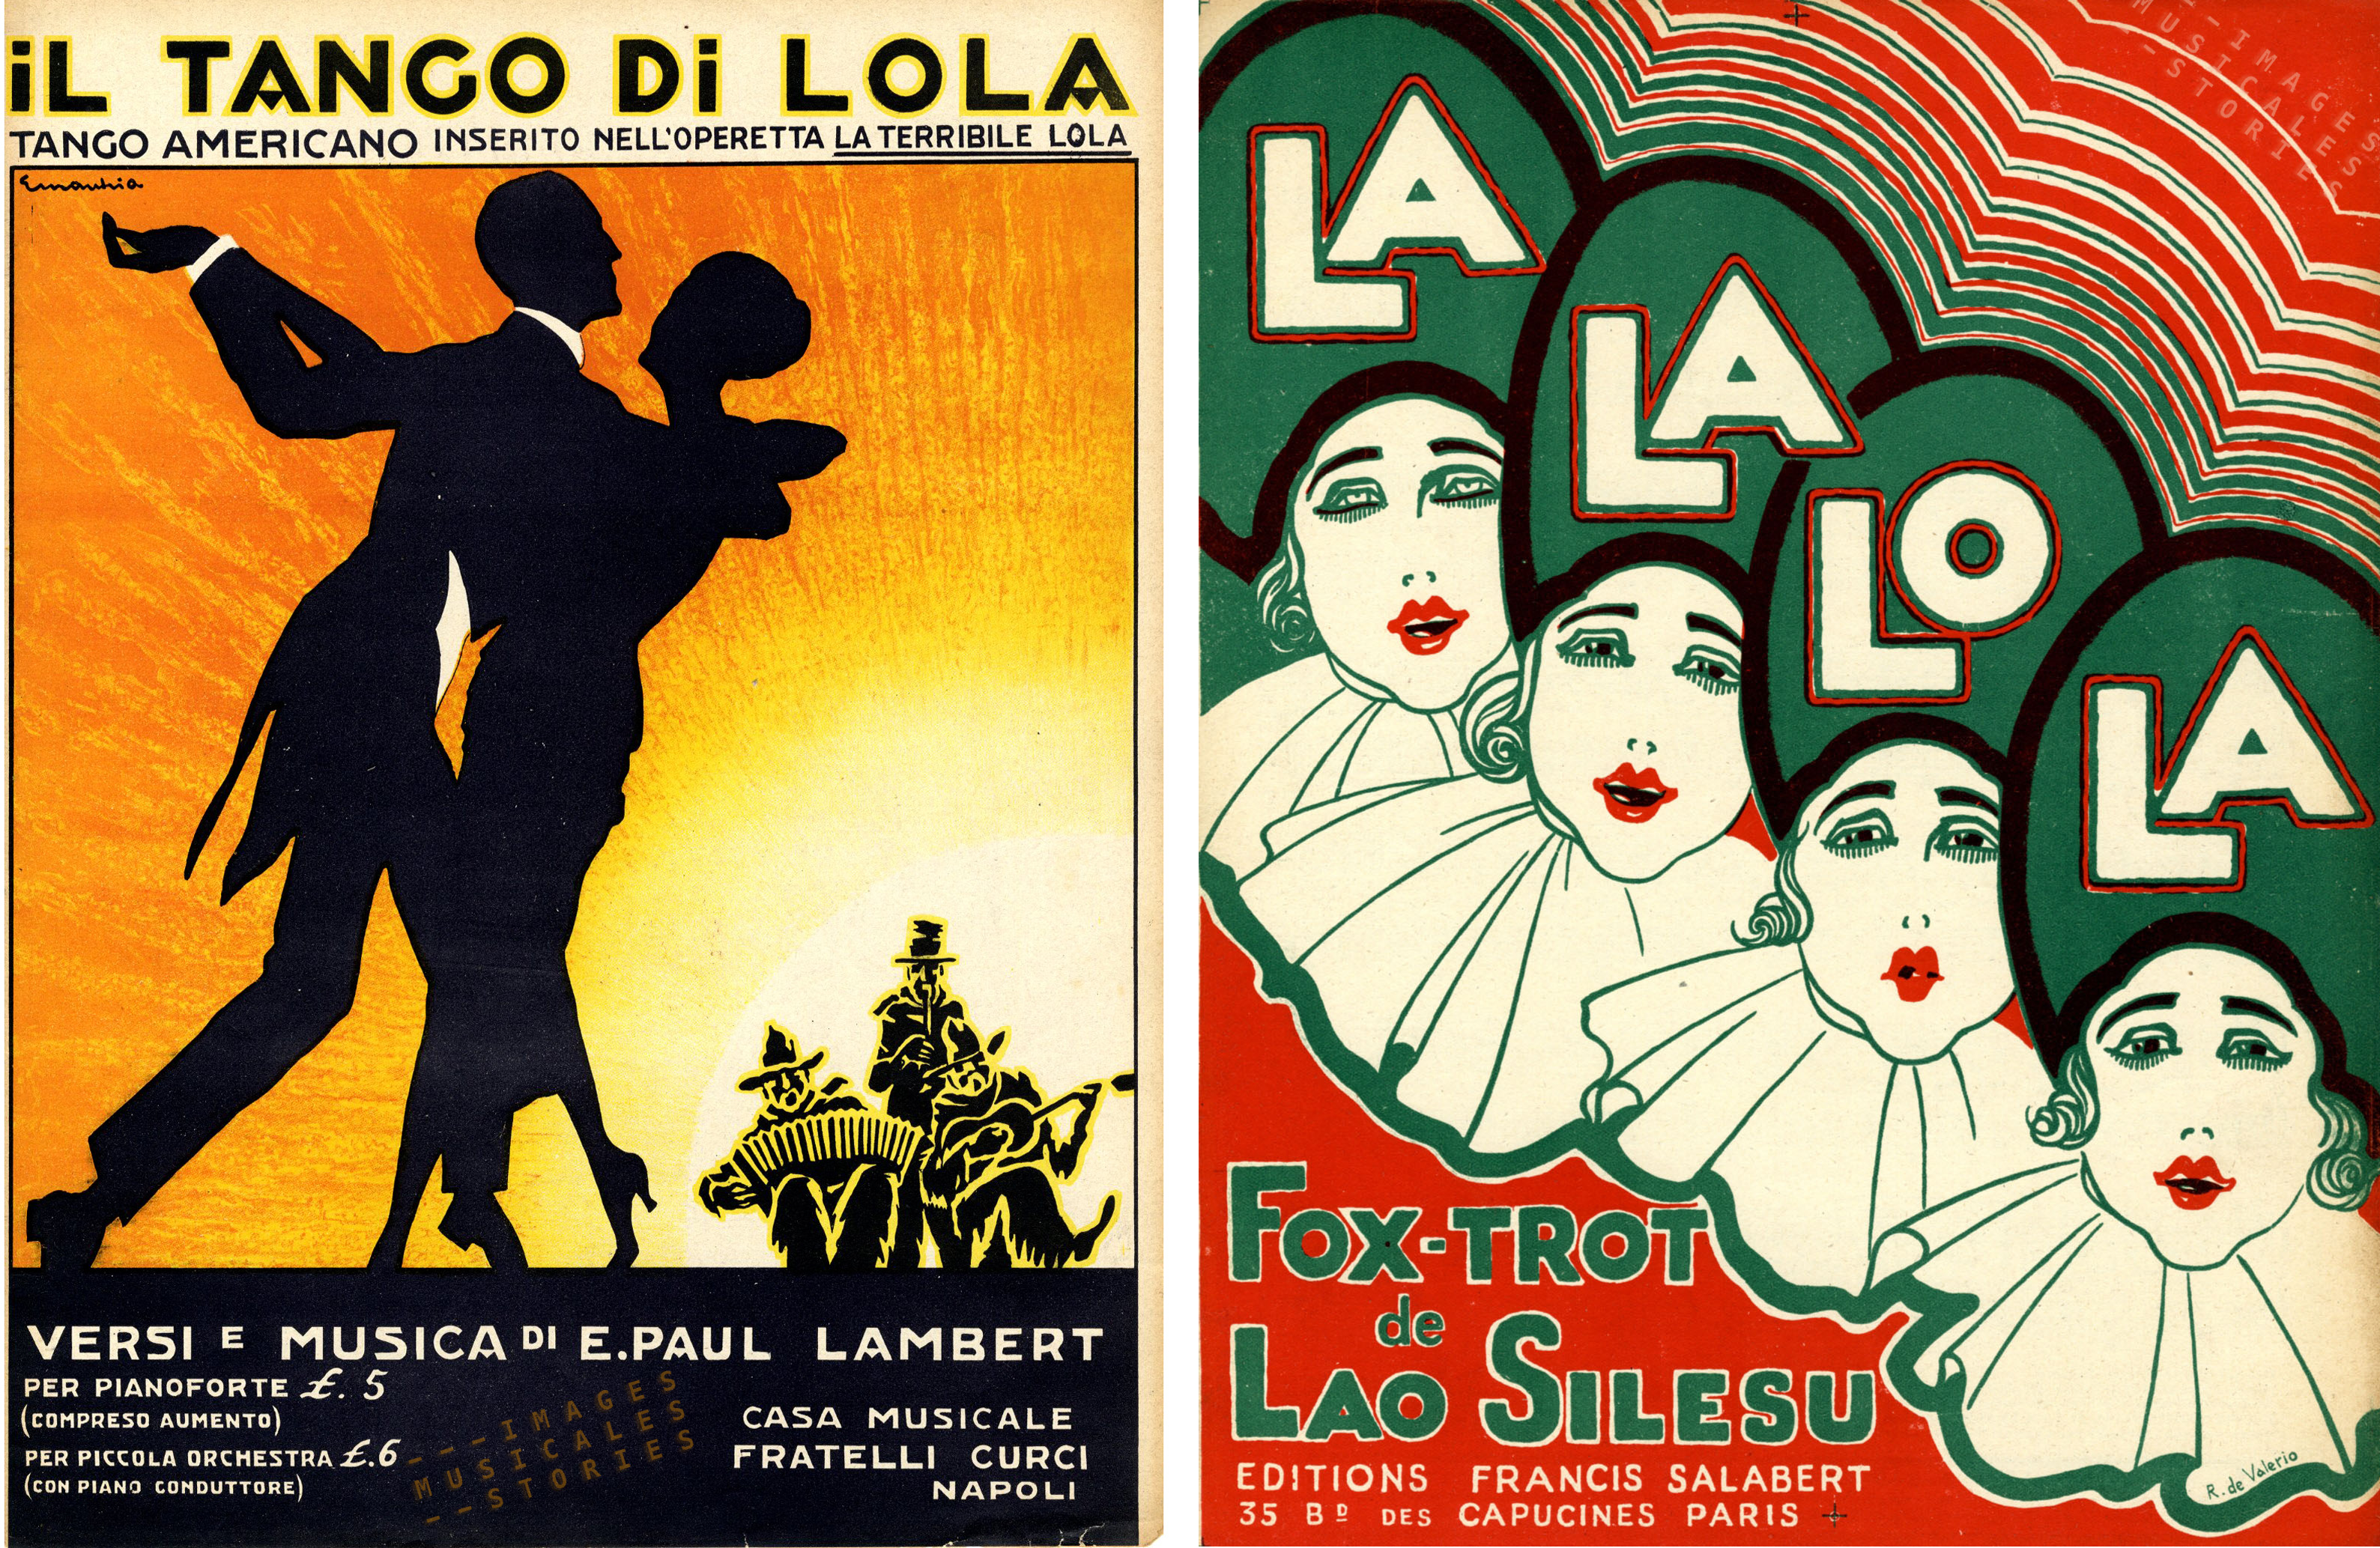 Lola (first name) sheet music covers on images musicales.be website